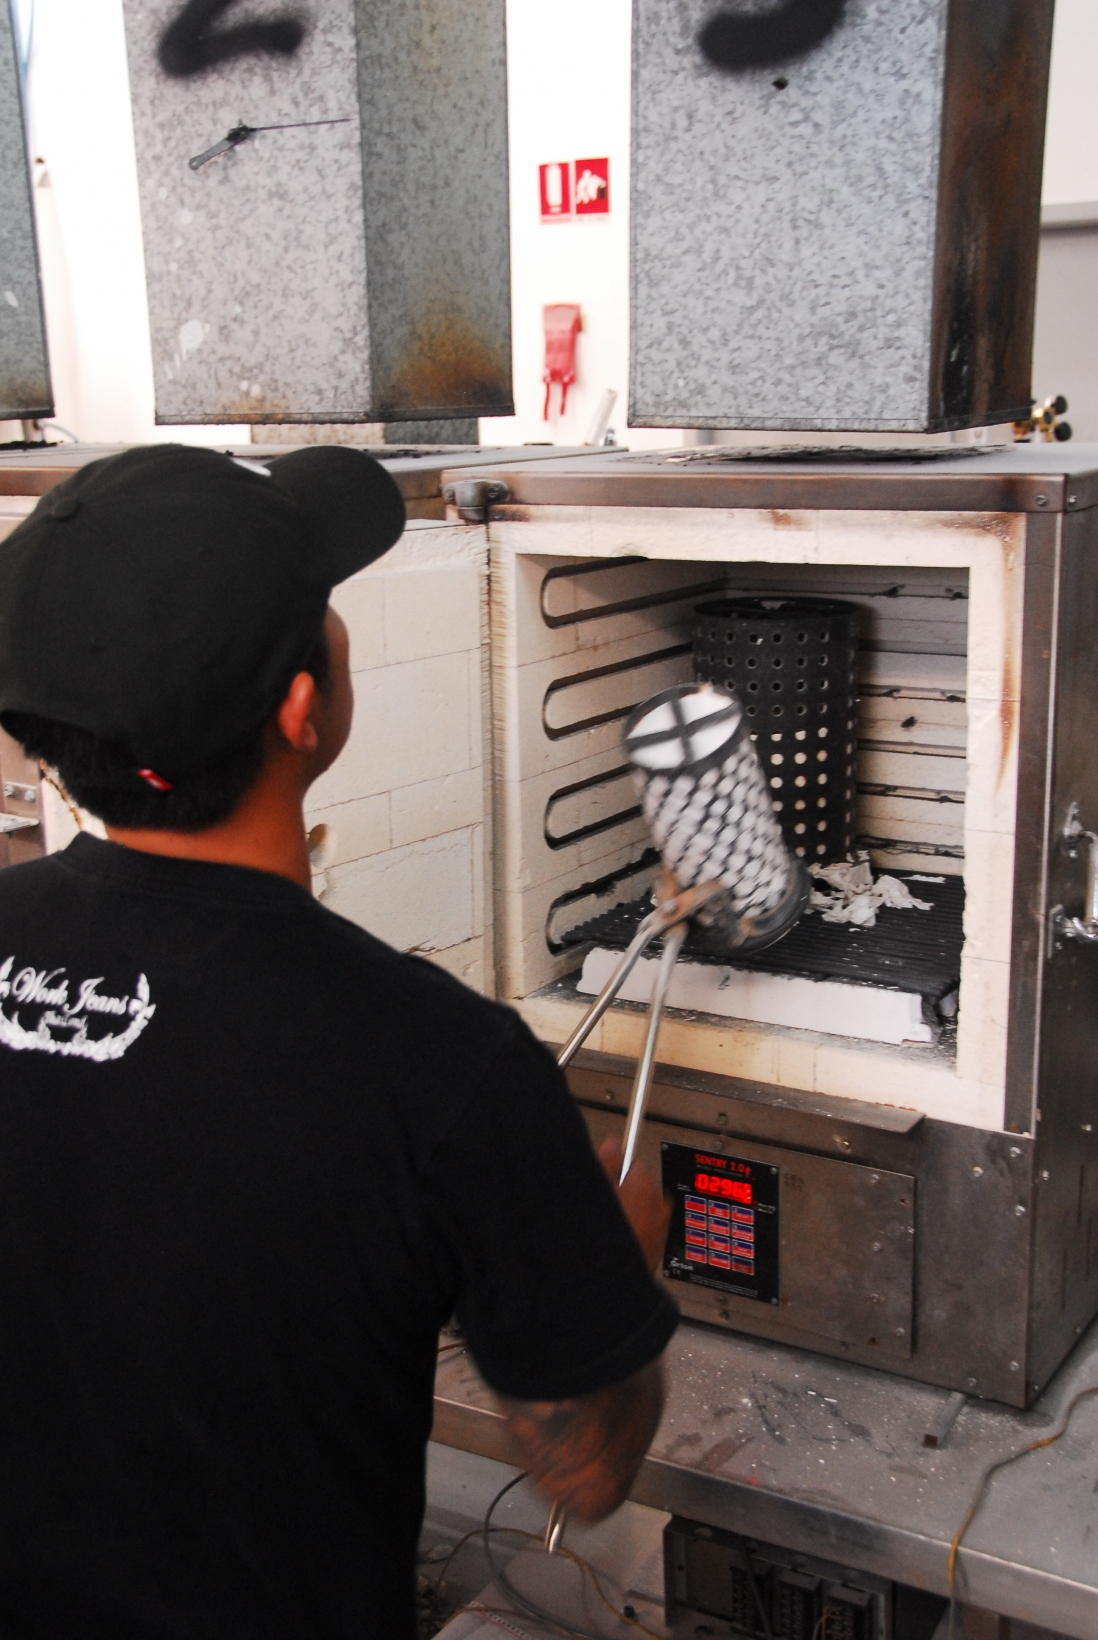 Man in cap at open door of industrial oven handling cylindrical object with tongs.